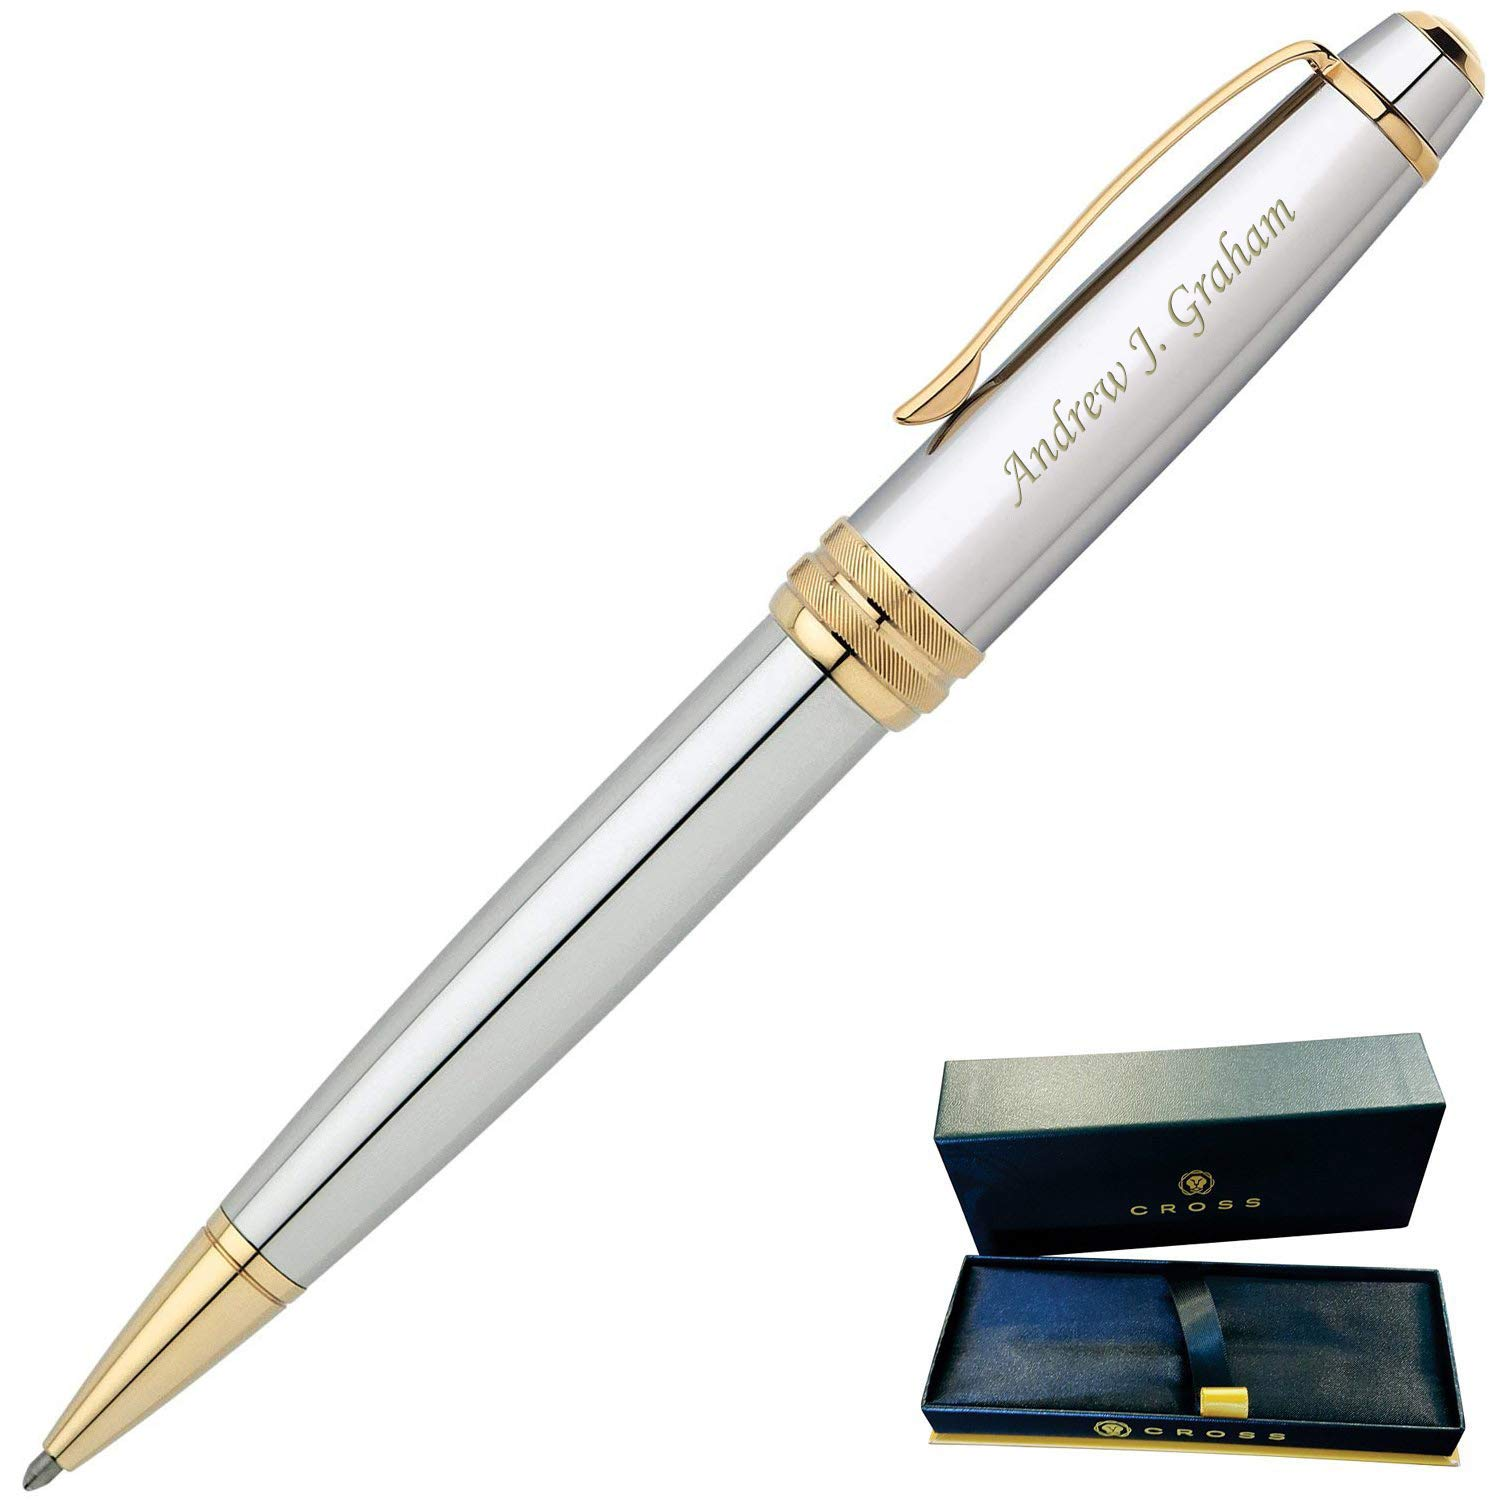 Dayspring Pens | Engraved/Personalized Cross Bailey Medalist Ballpoint Gift Pen- Chrome with Gold trim, Custom Engraved Fast!